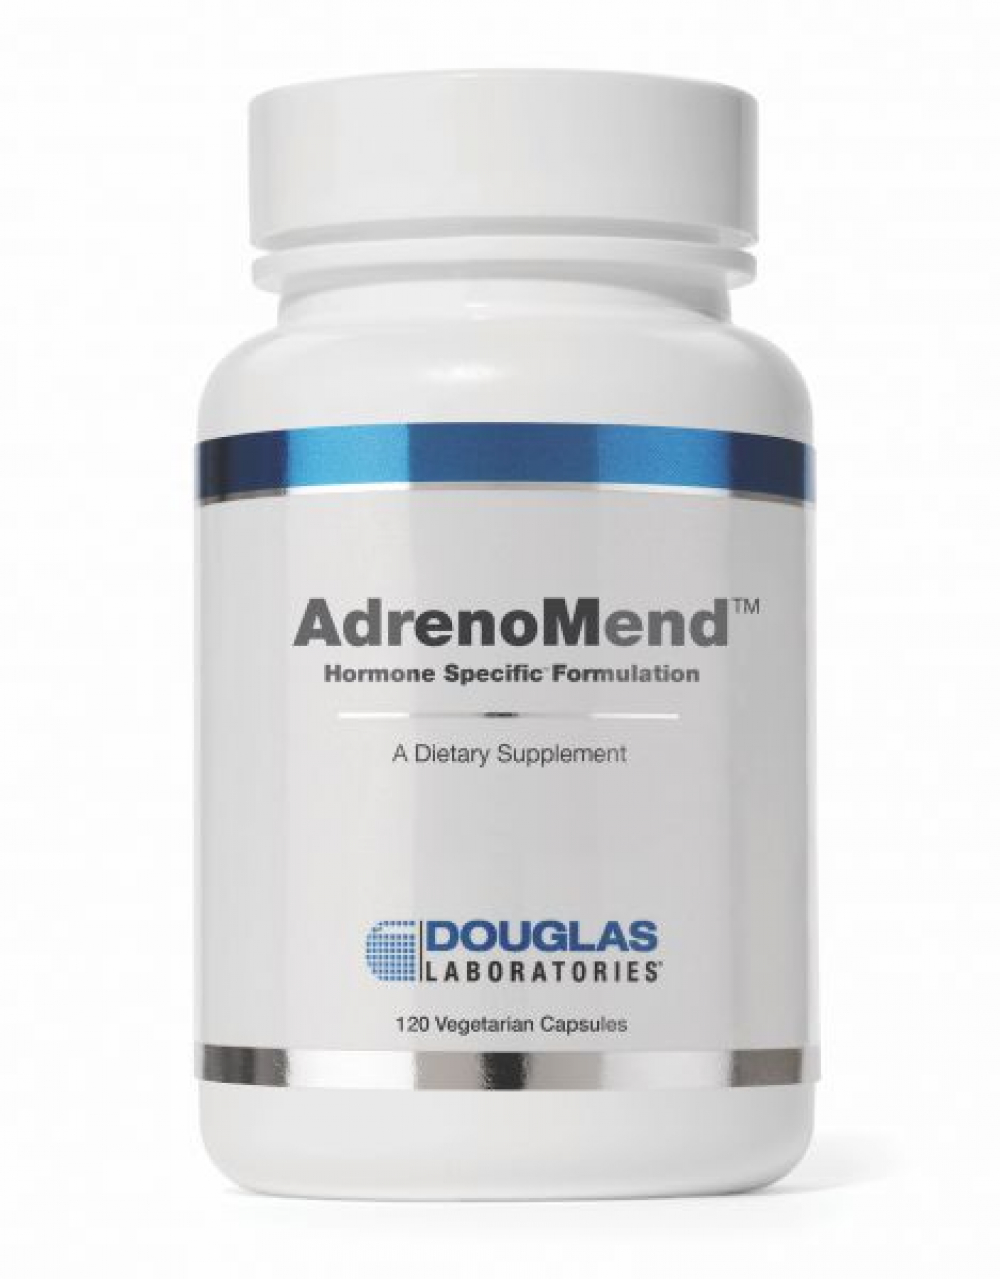 Douglas Laboratories USA AdrenoMend 120 veg. Kapseln